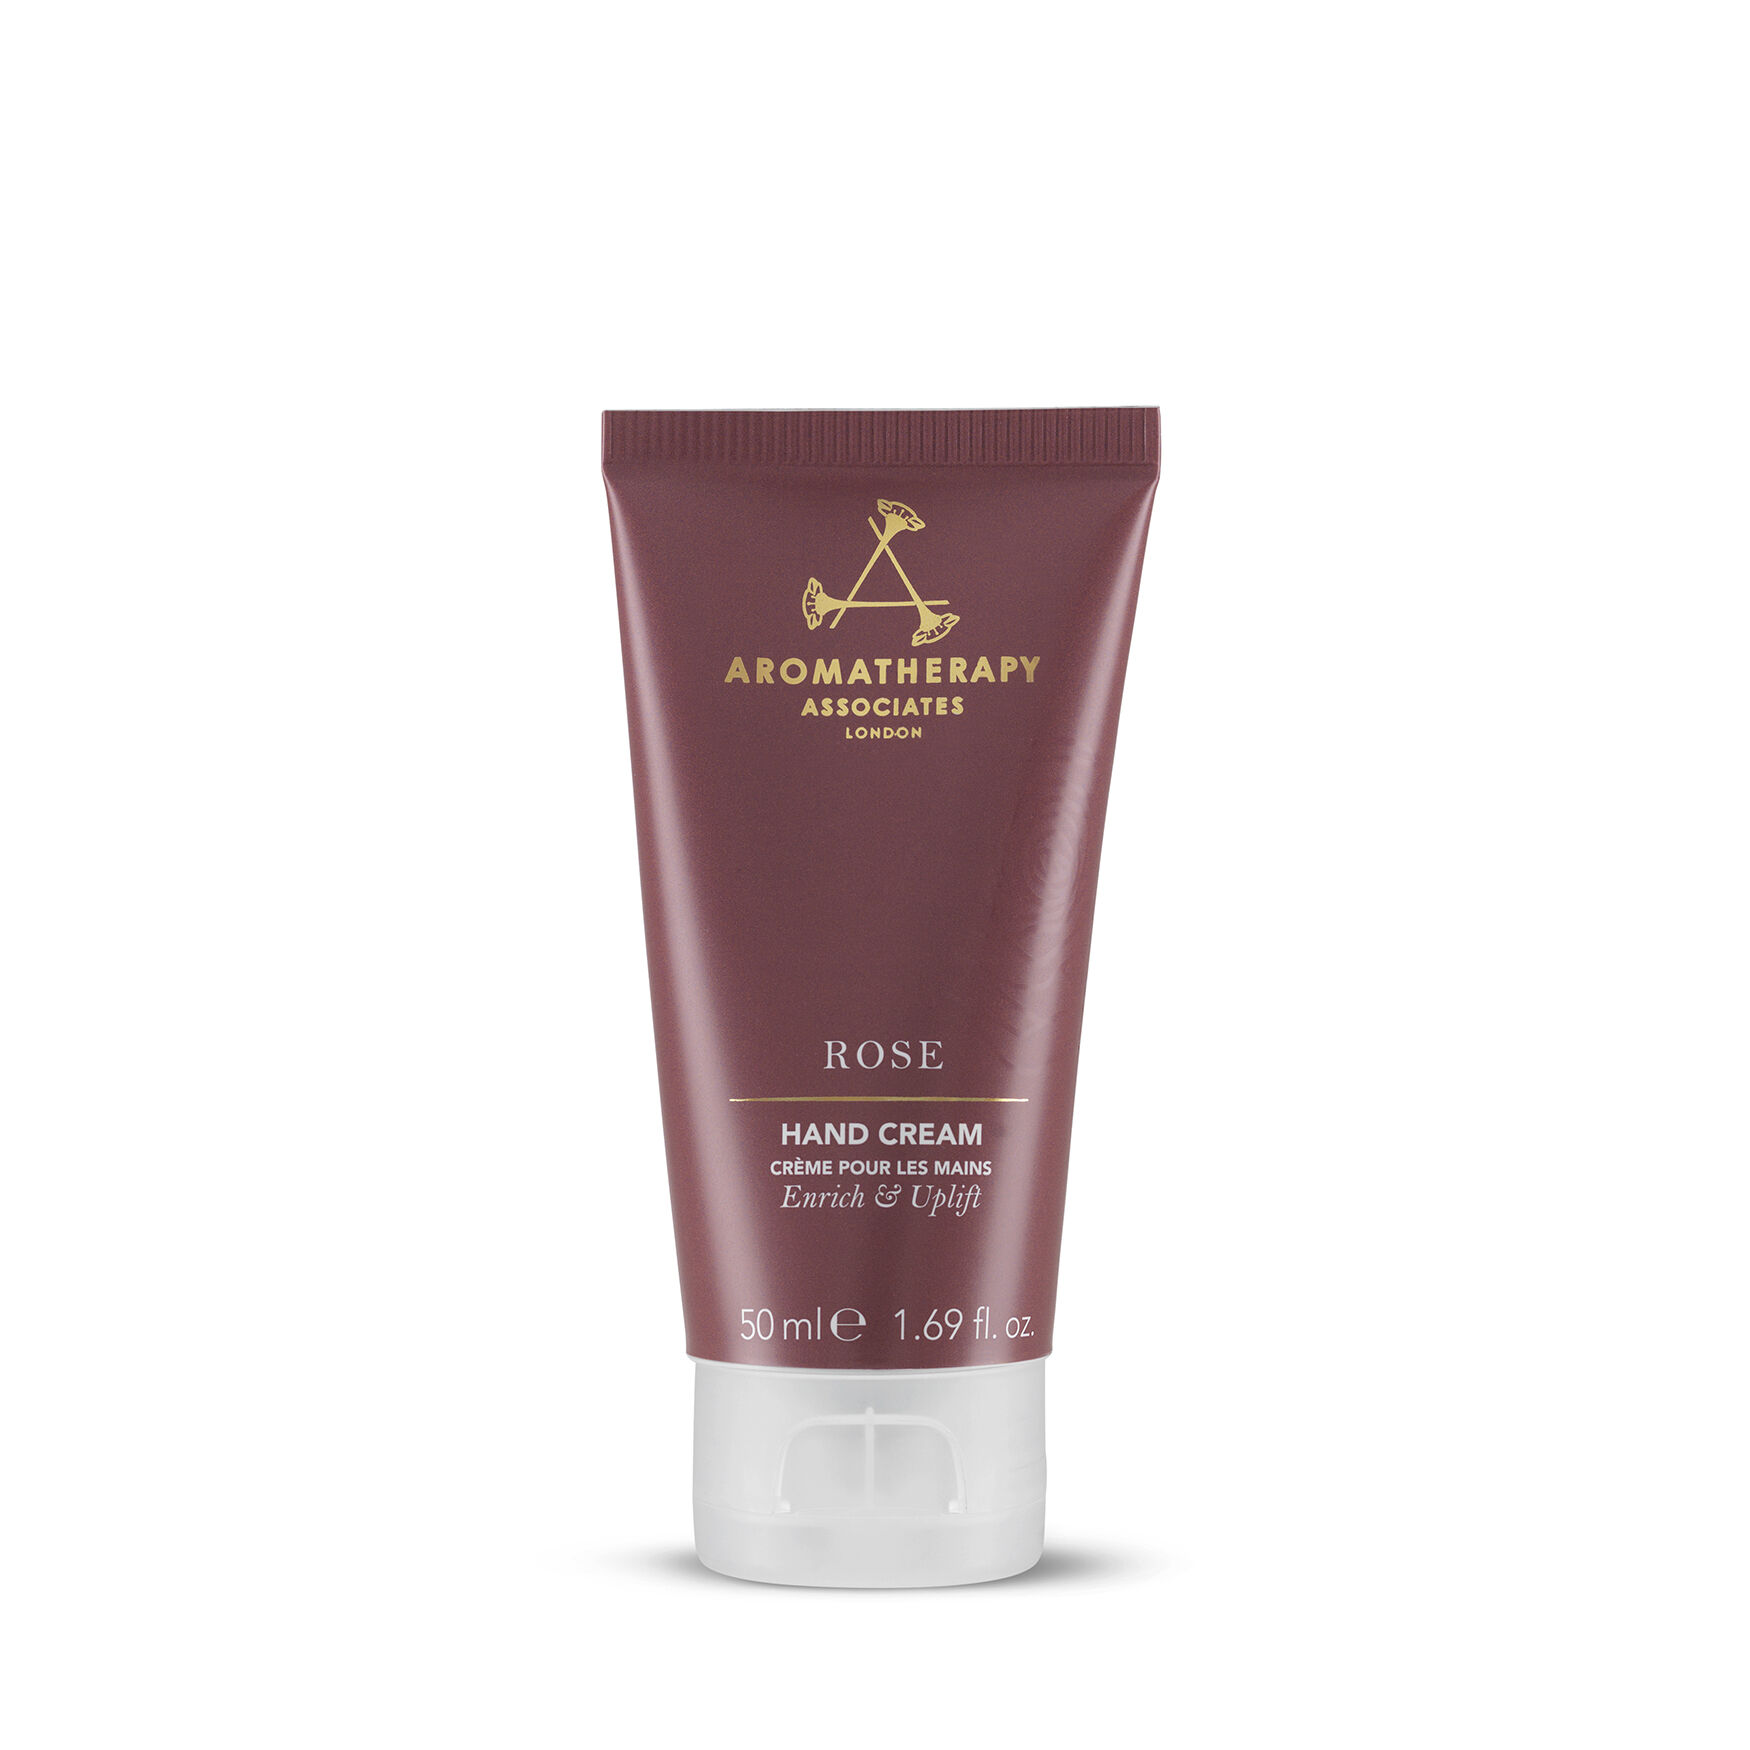 The Body Collection Kakadu Plum Hand Cream